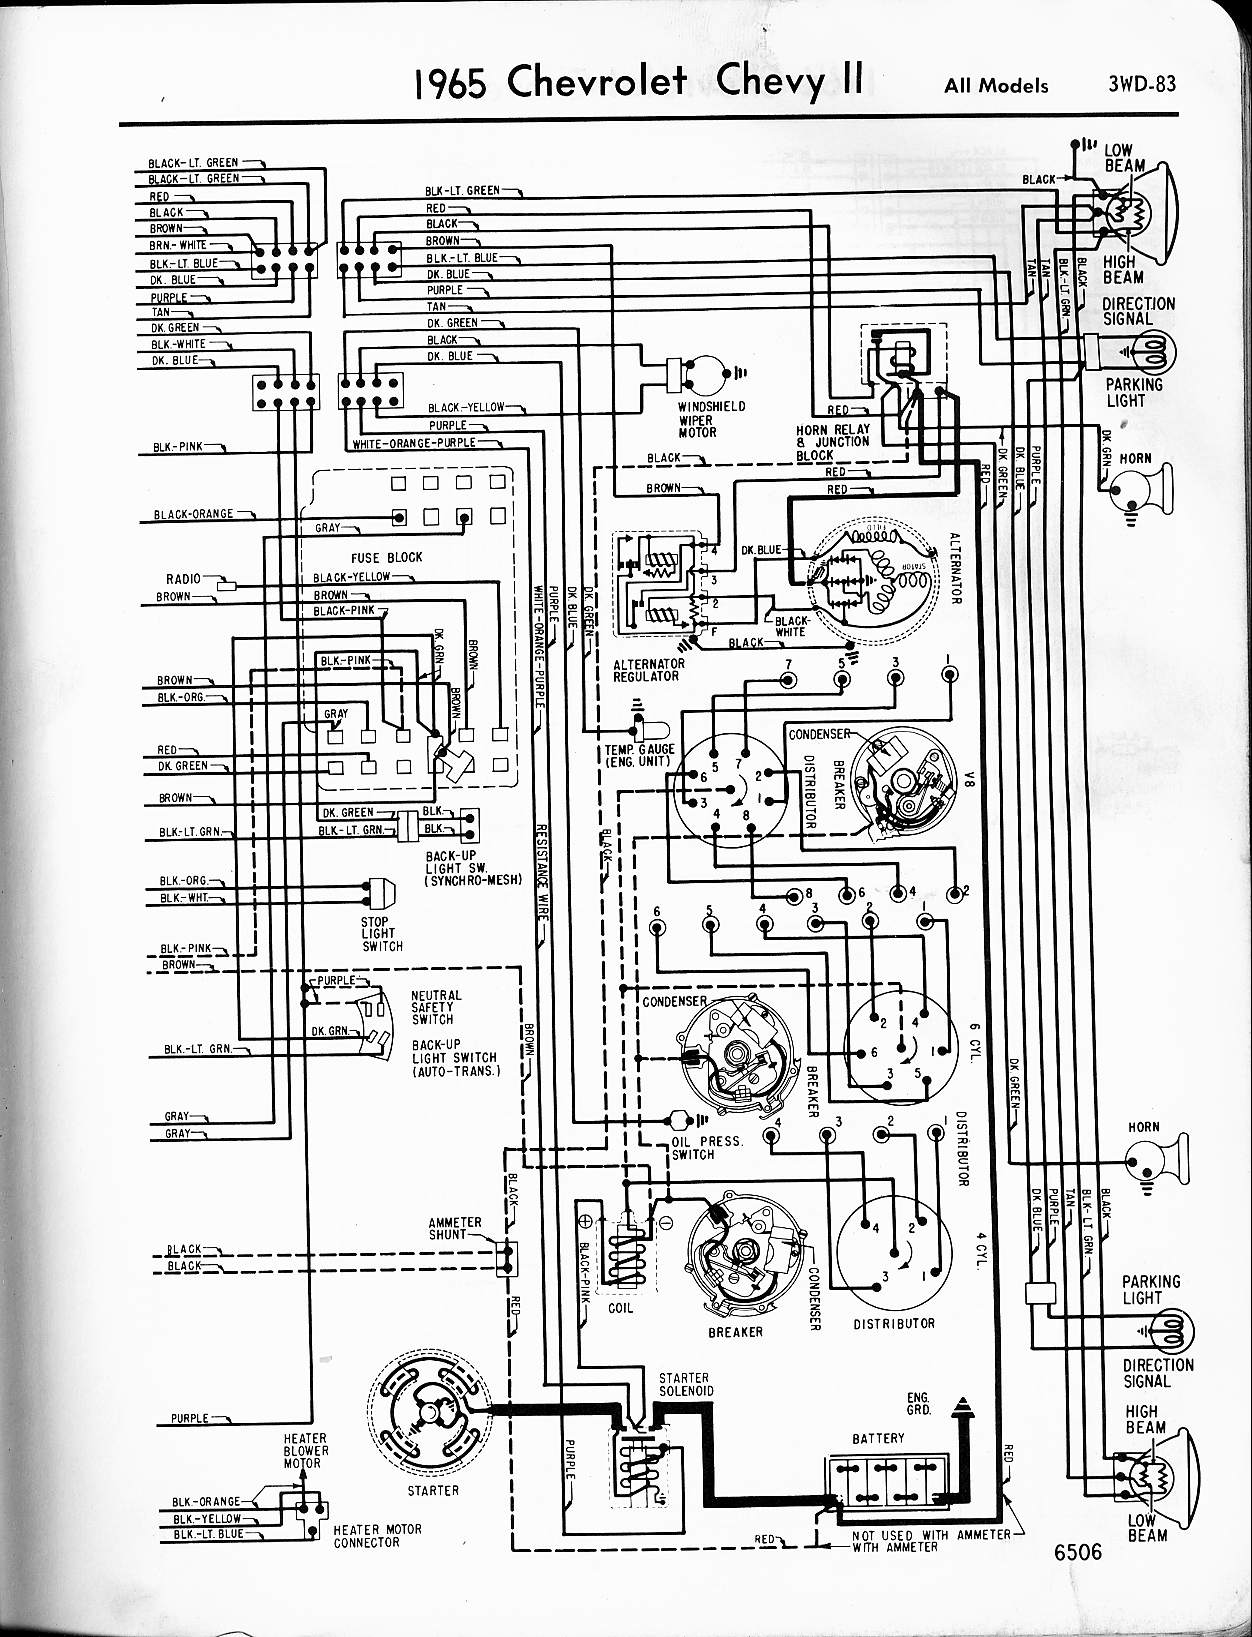 MWireChev65_3WD 083 chevy diagrams 1964 impala headlight switch wiring diagram at webbmarketing.co